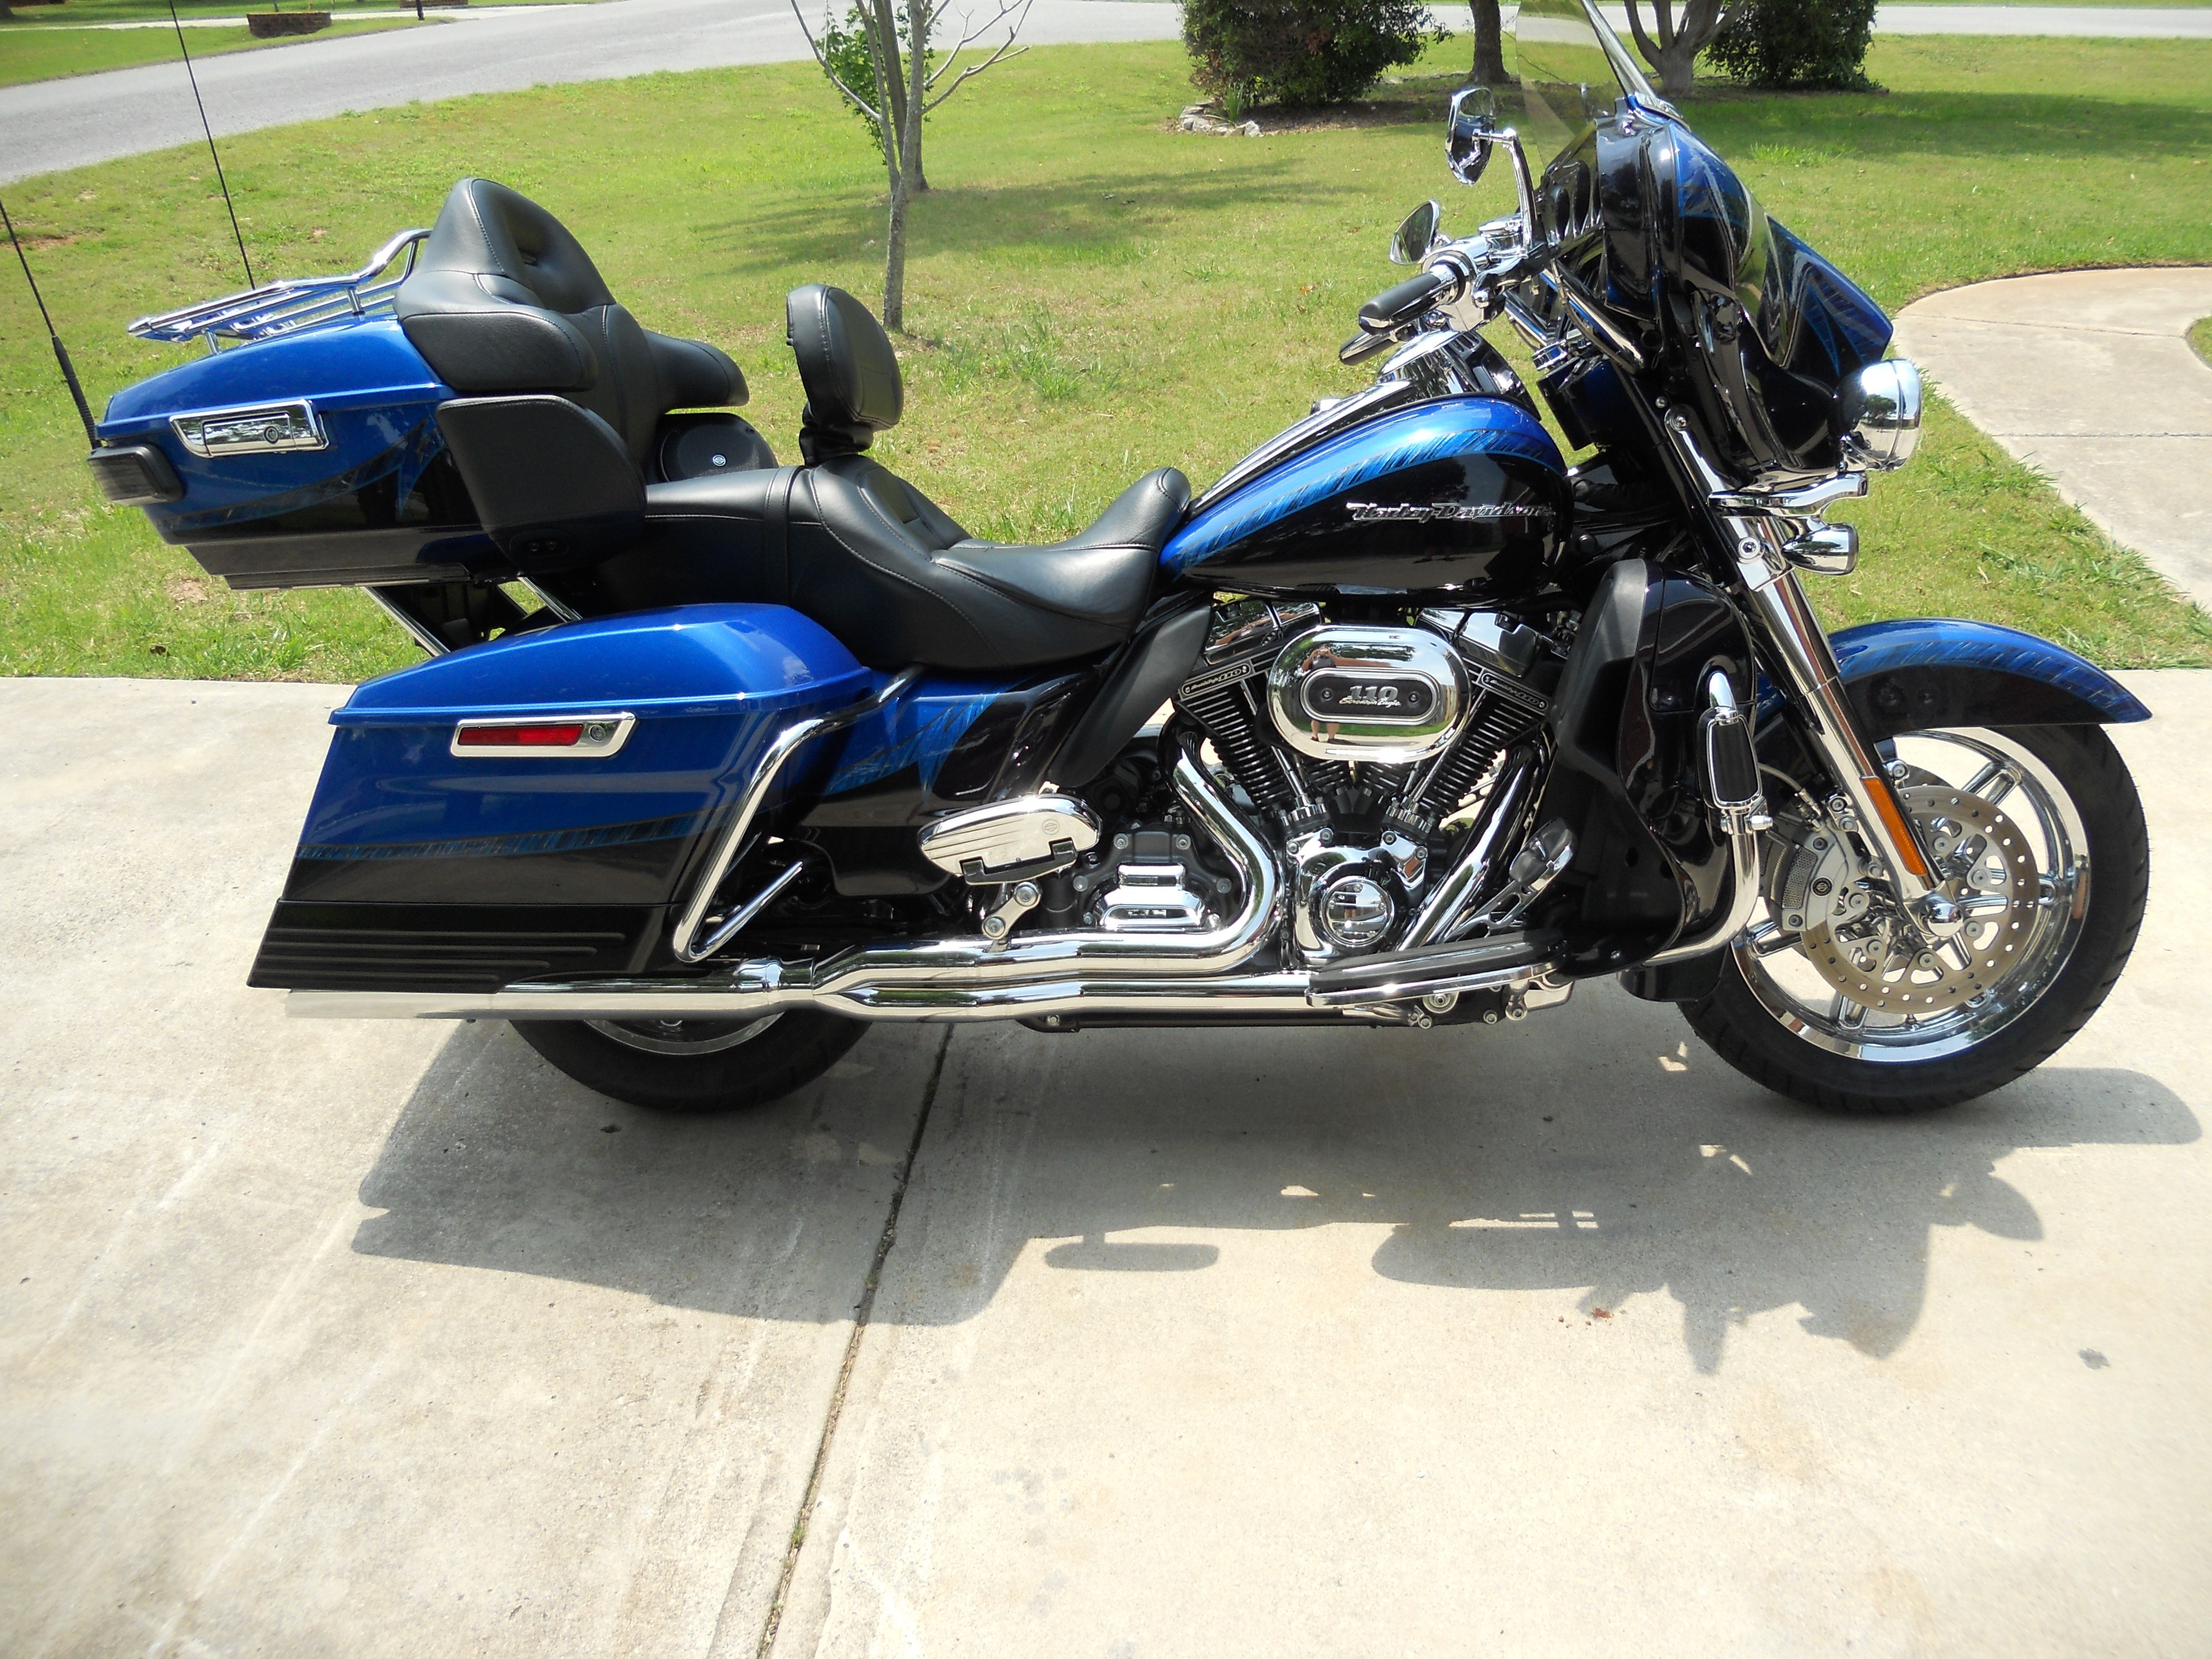 2017 Wide Glide For Sale Texas >> 2014 Harley-Davidson® CVO Electra Glide® Ultra Limited for Sale near Cliff, KY (13 Bikes, Page 1 ...